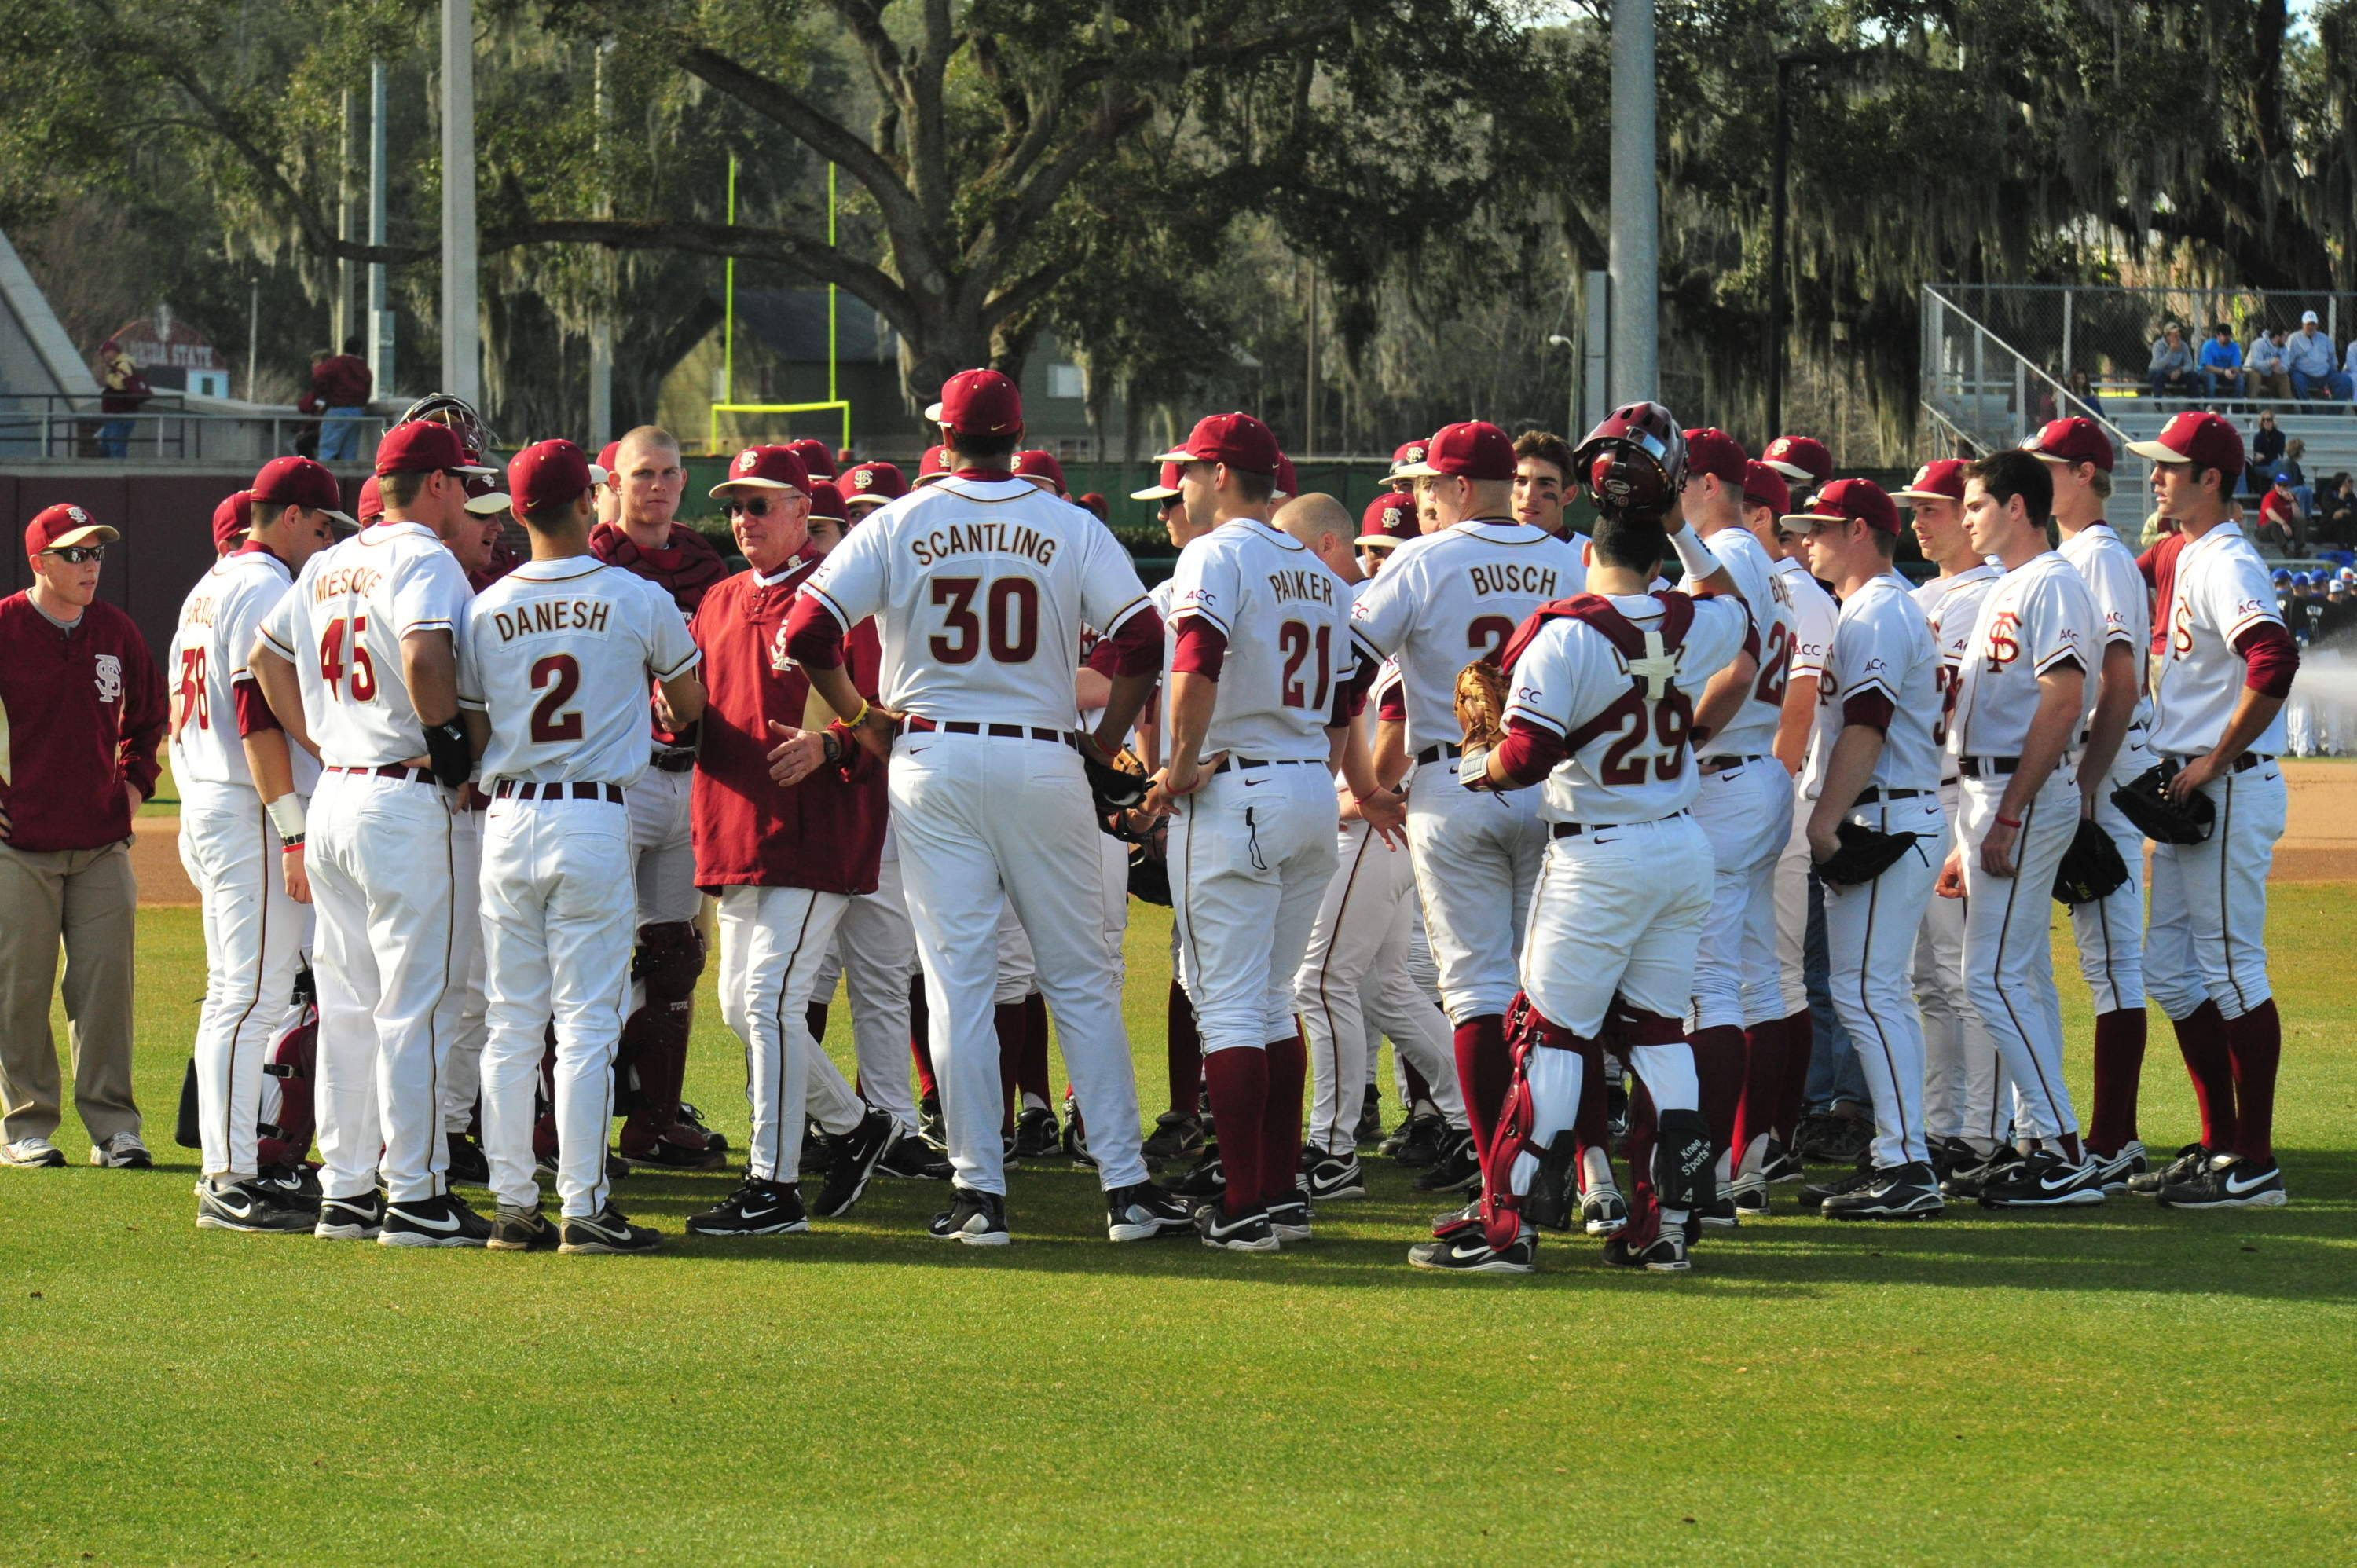 The 2010 Seminoles huddle before the start of opening day on Friday night in Tallahassee against Georgia State.